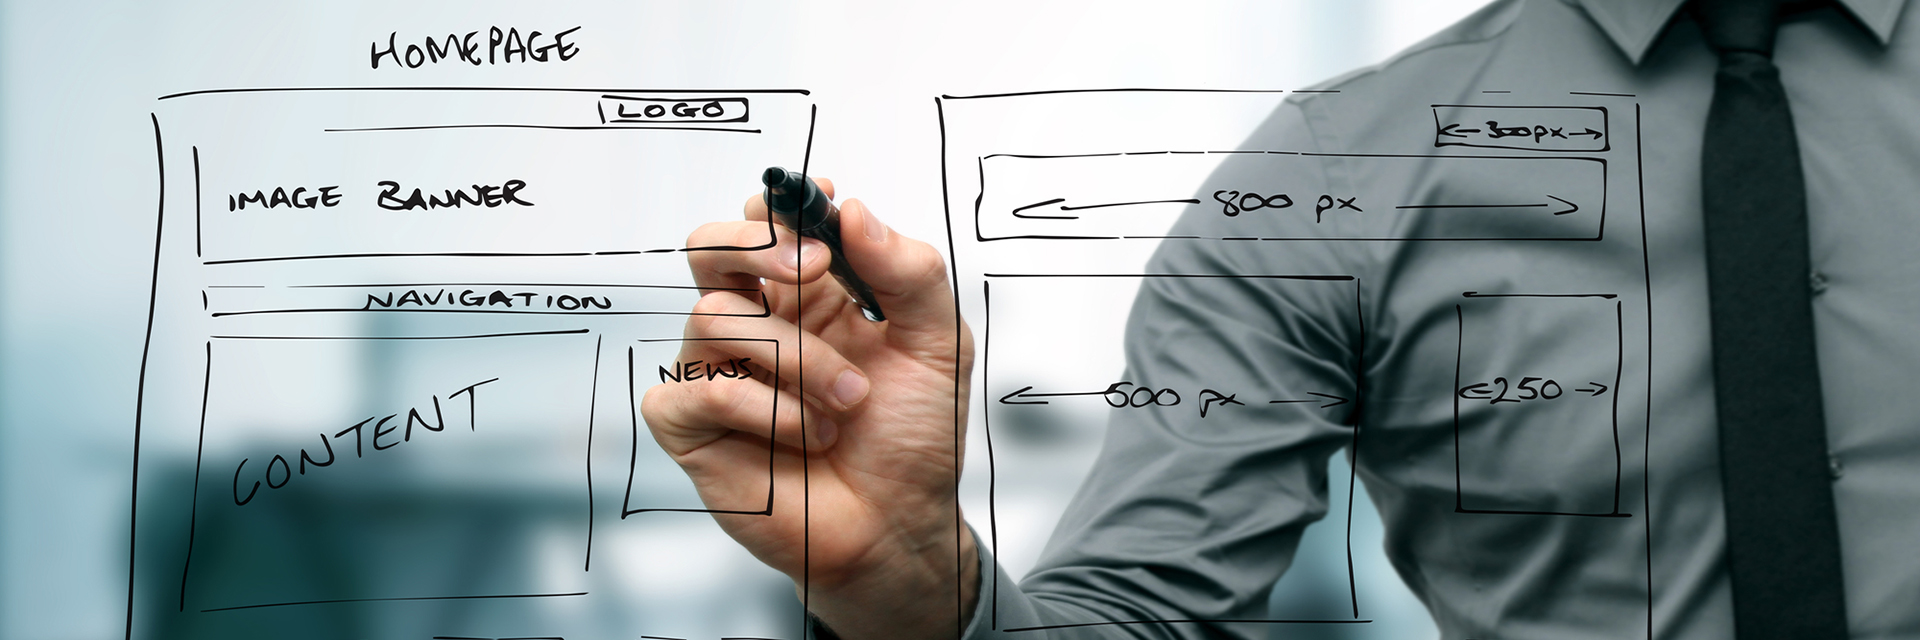 Web Designer drawing rough draft of website